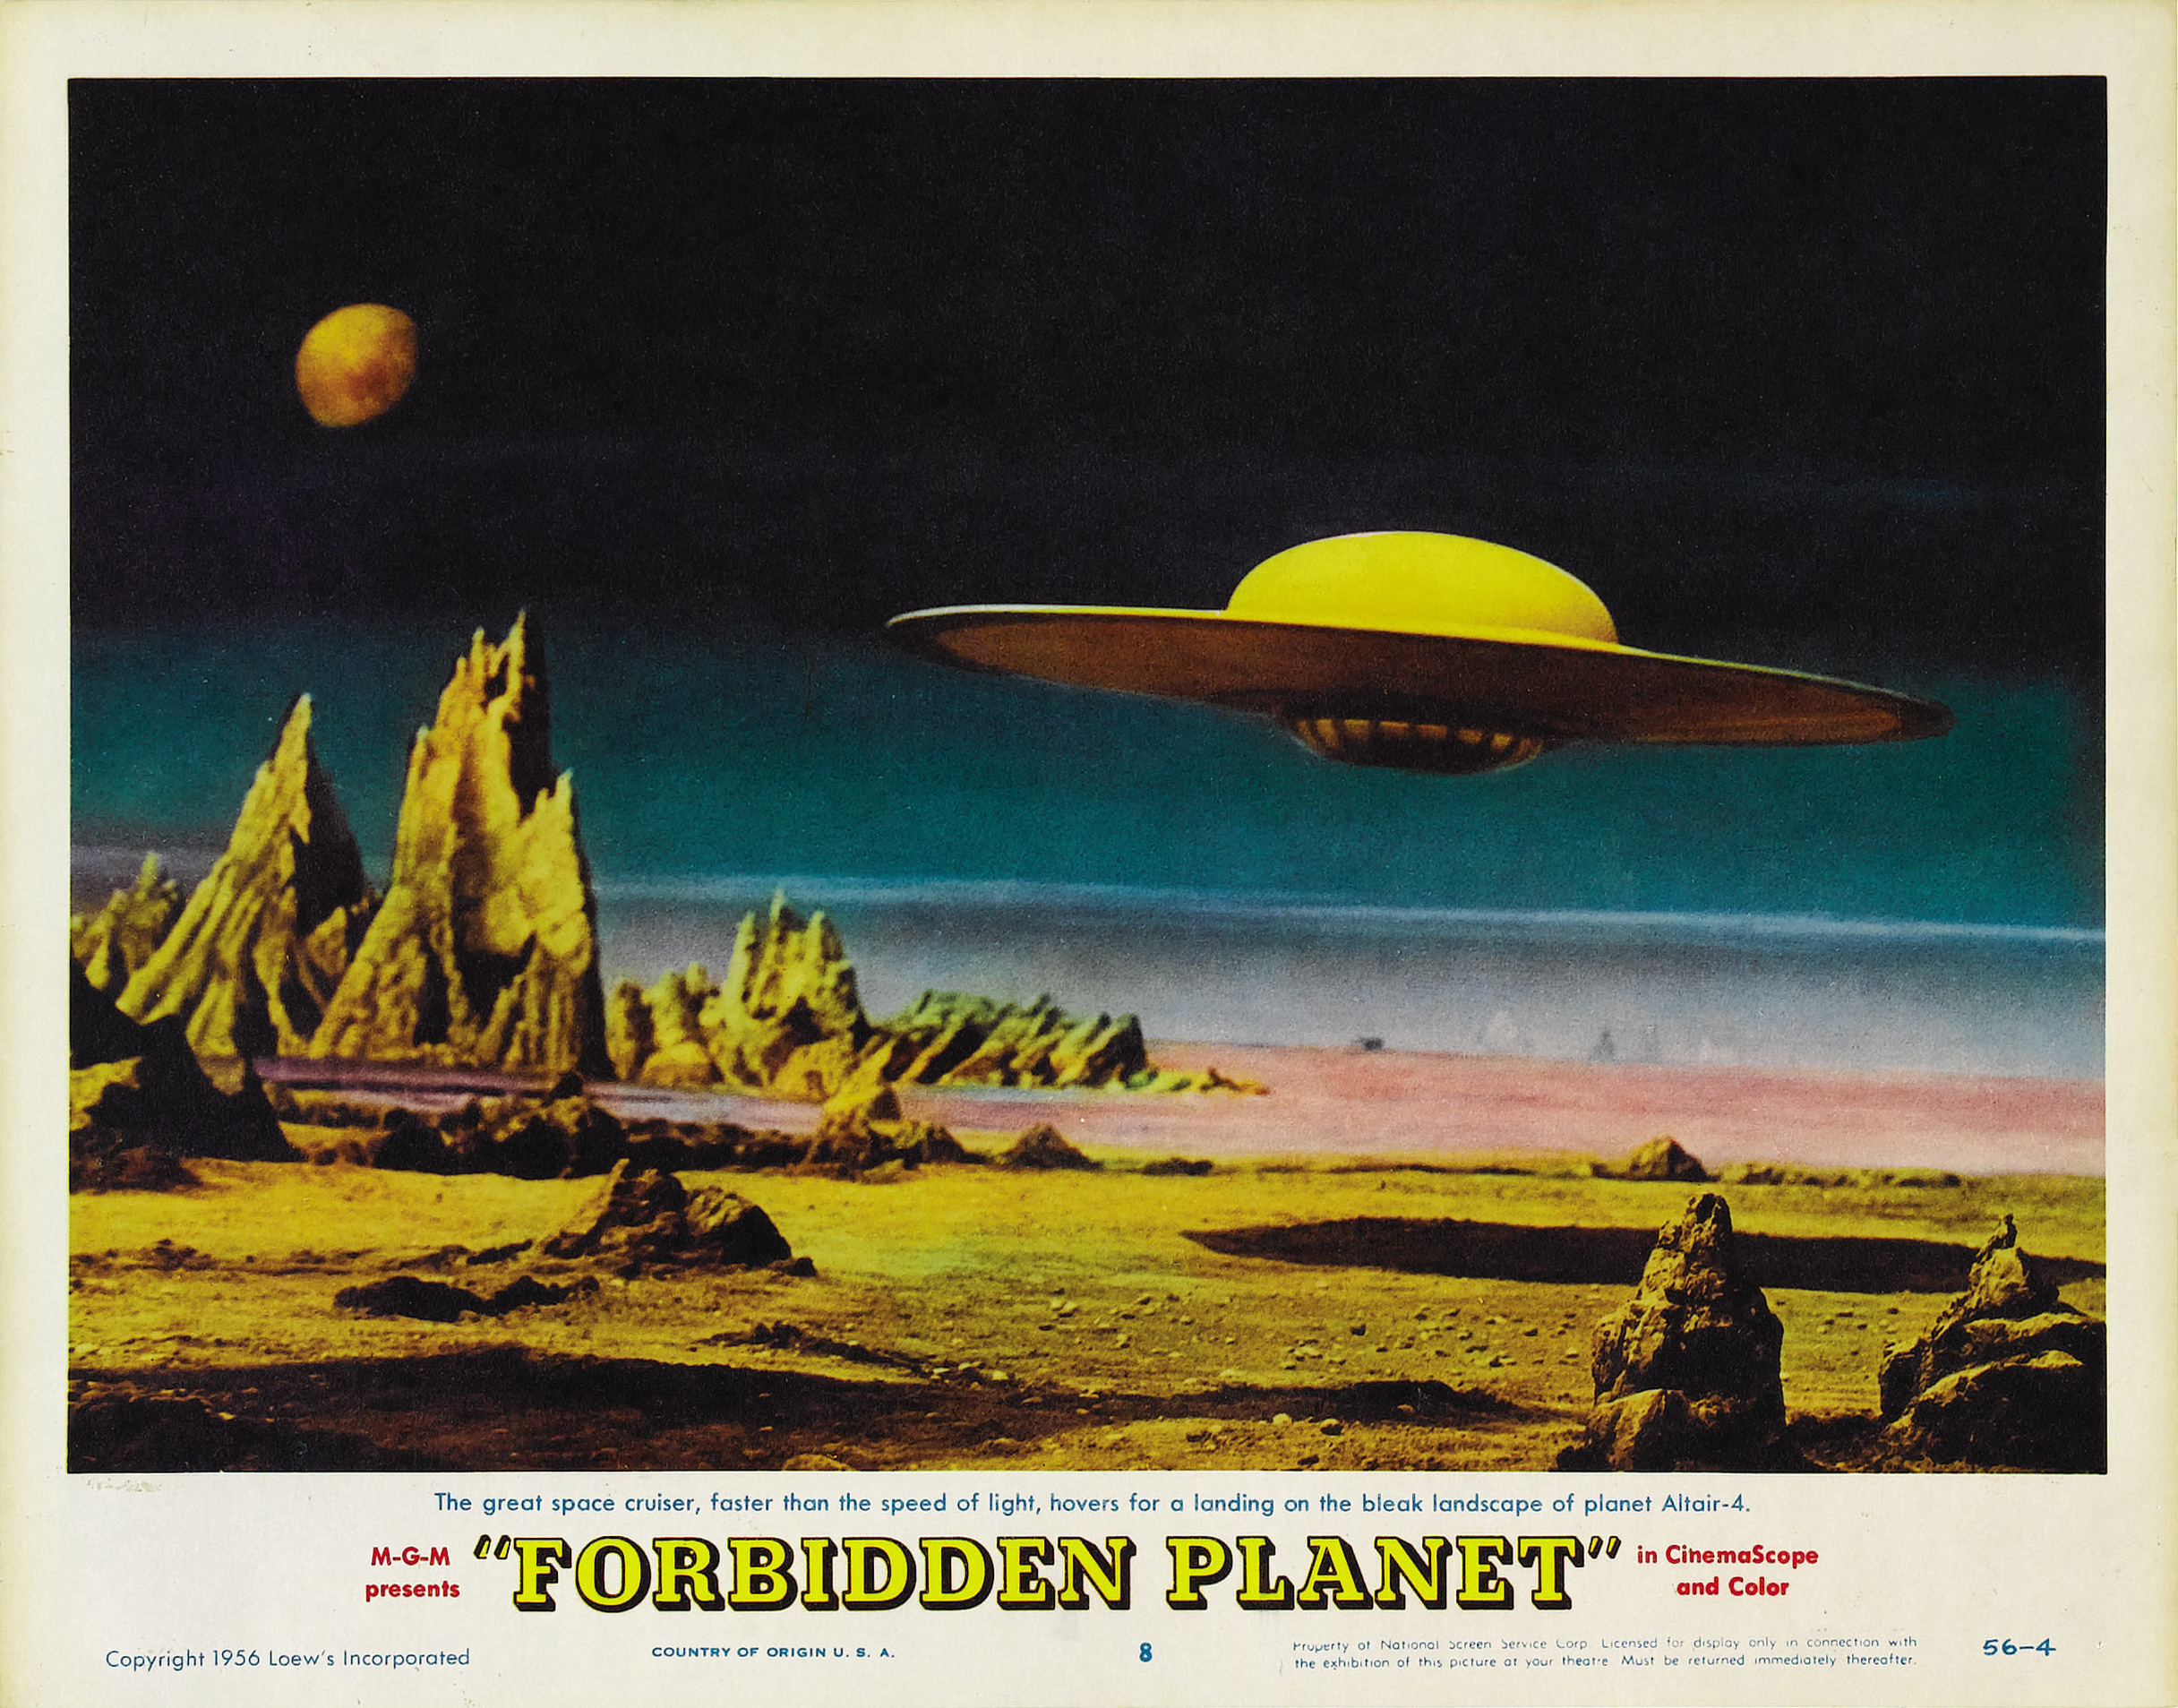 Forbidden planet action adventure sci fi spaceship poster for 11975 sunshine terrace